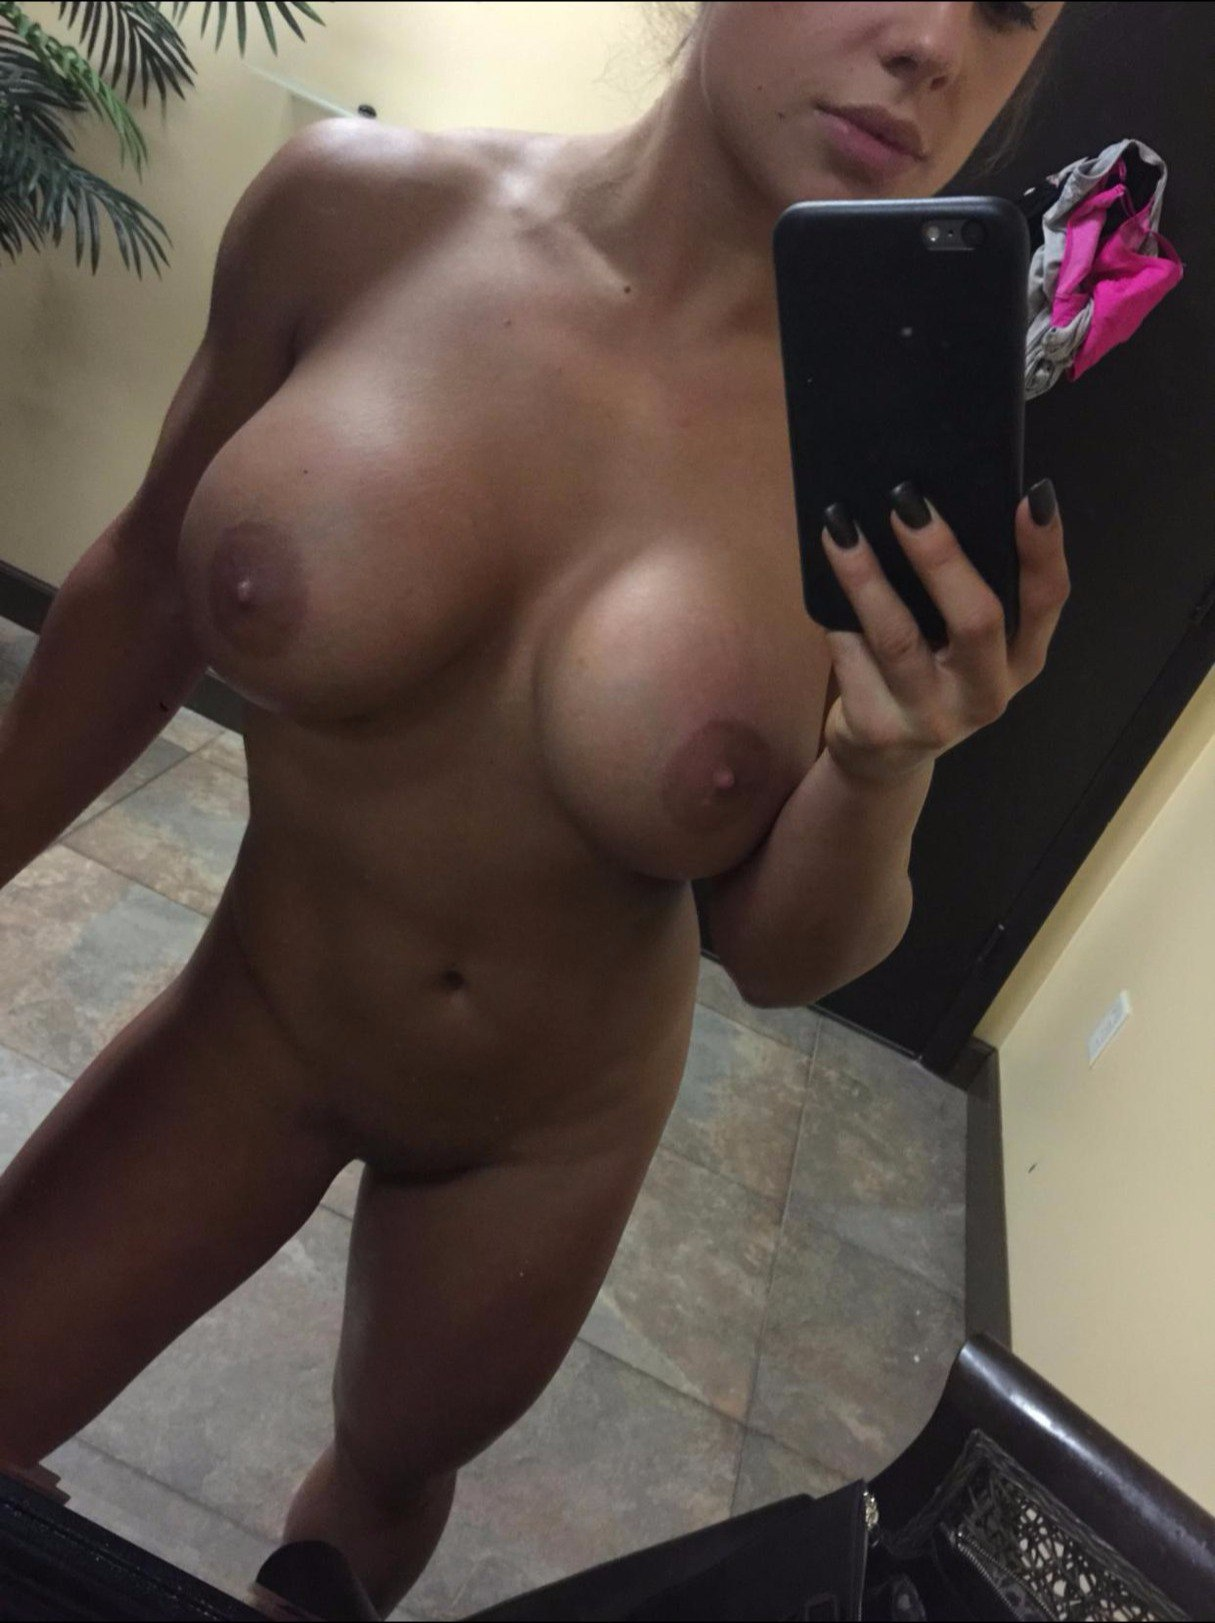 Amateur girls naked locker room